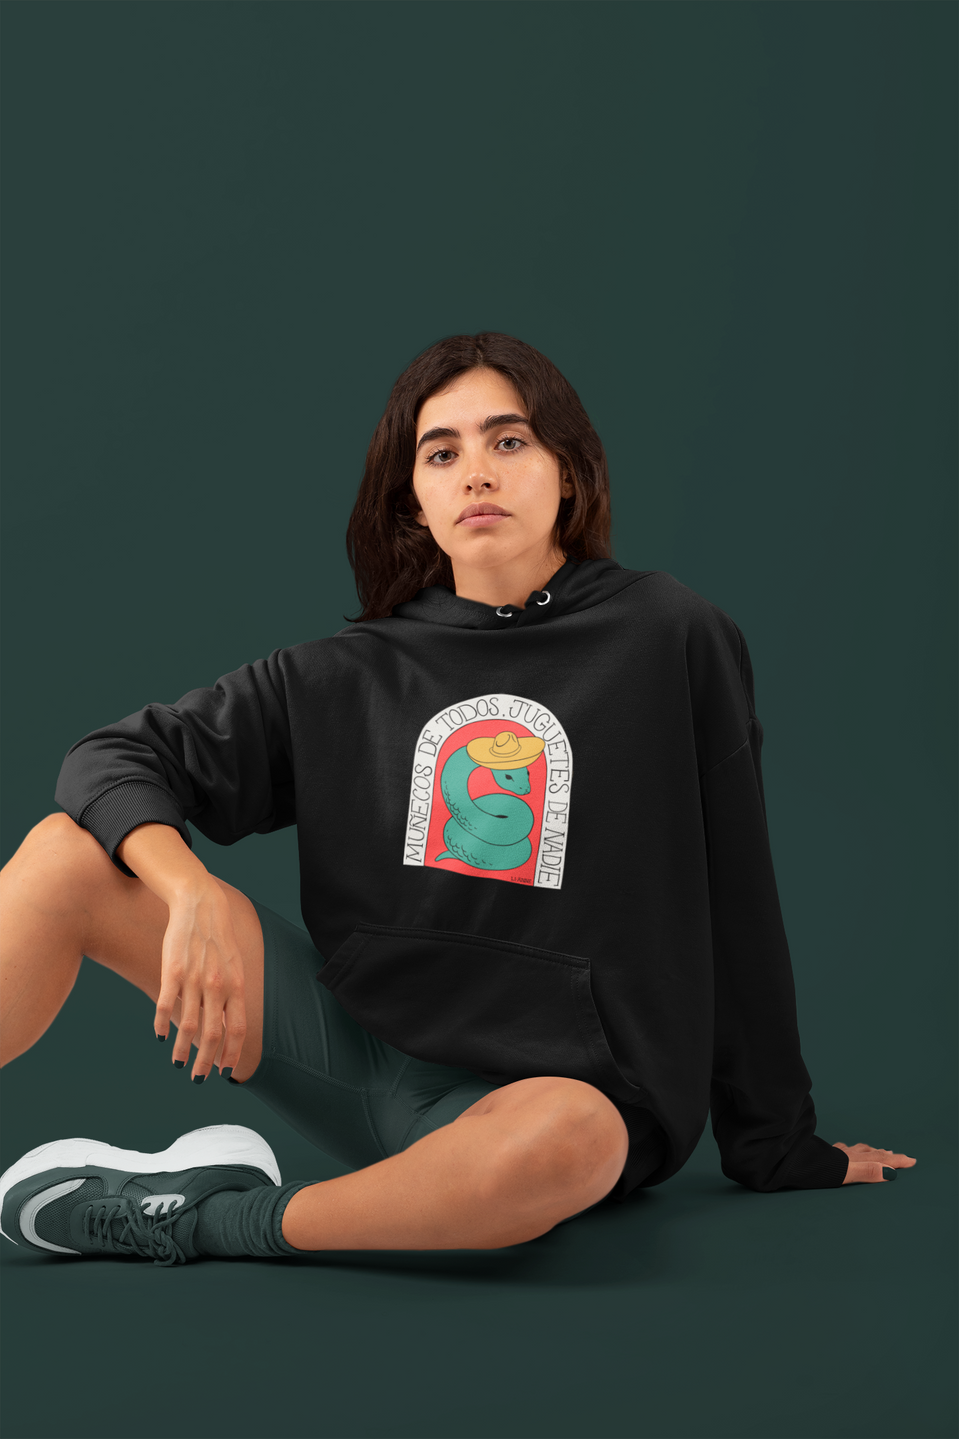 monochromatic-sweatshirt-mockup-featurin